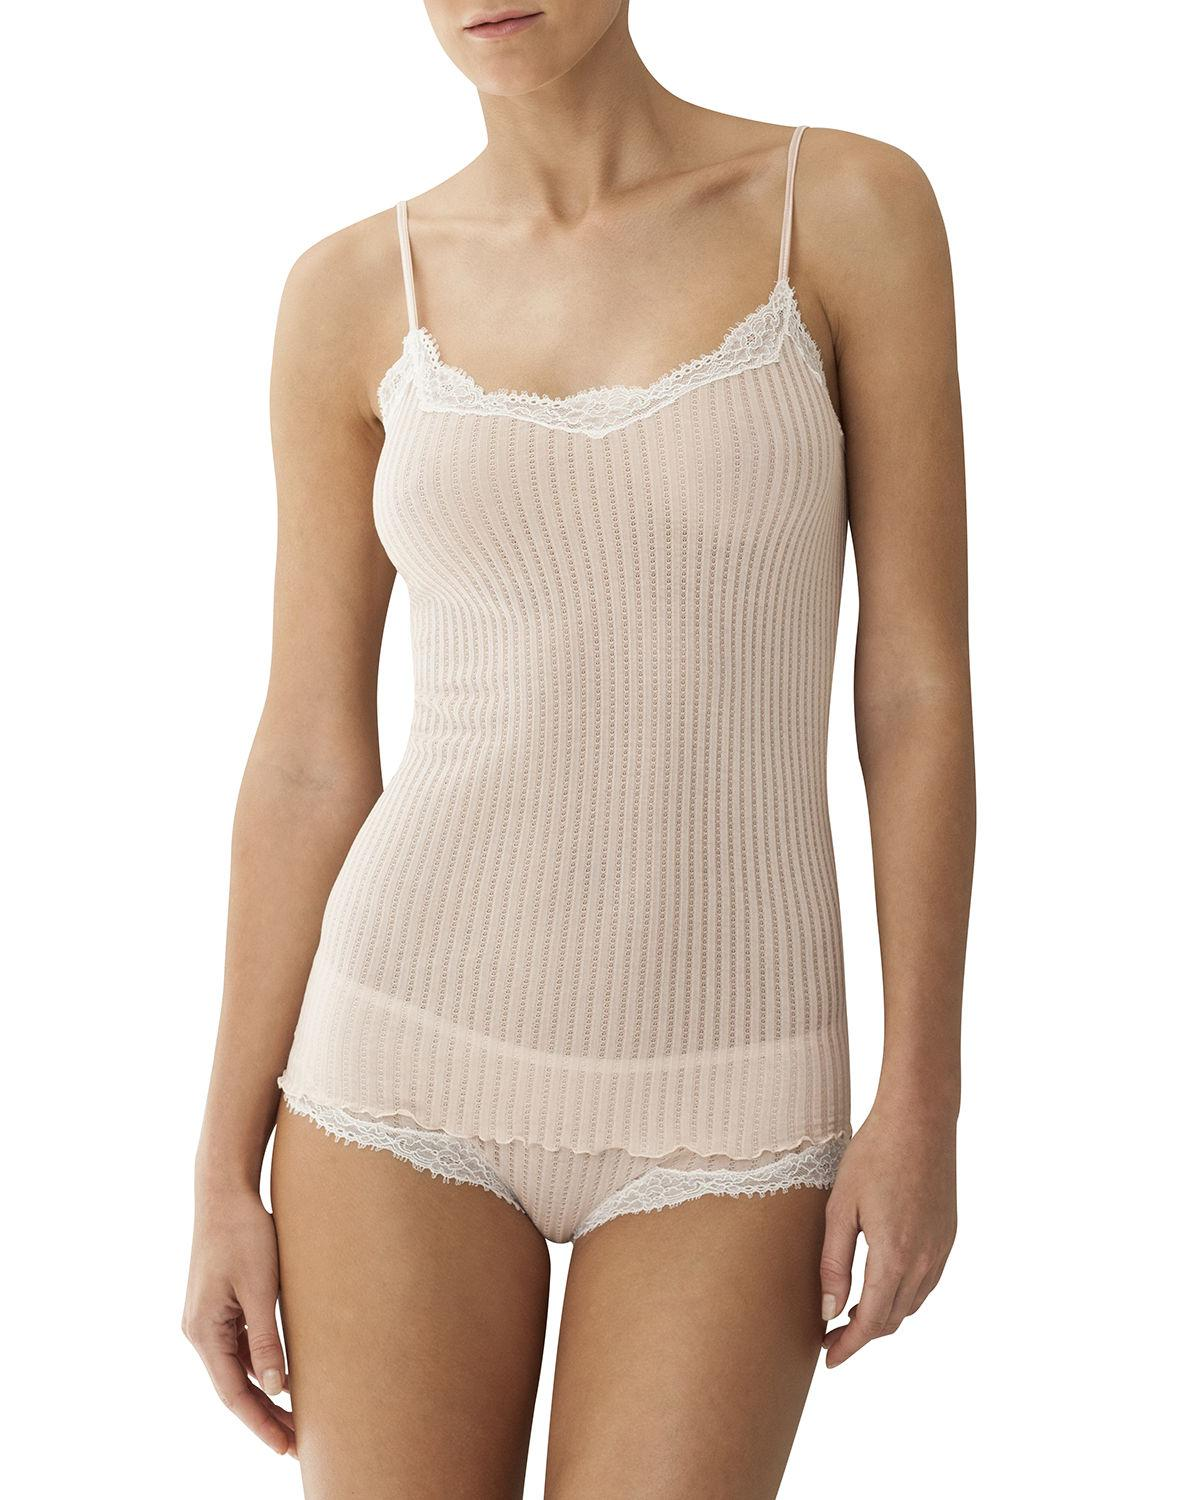 Womens Sensual Opulence Jersey & Lace Briefs Zimmerli Buy Cheap Huge Surprise p6riTQuK7N